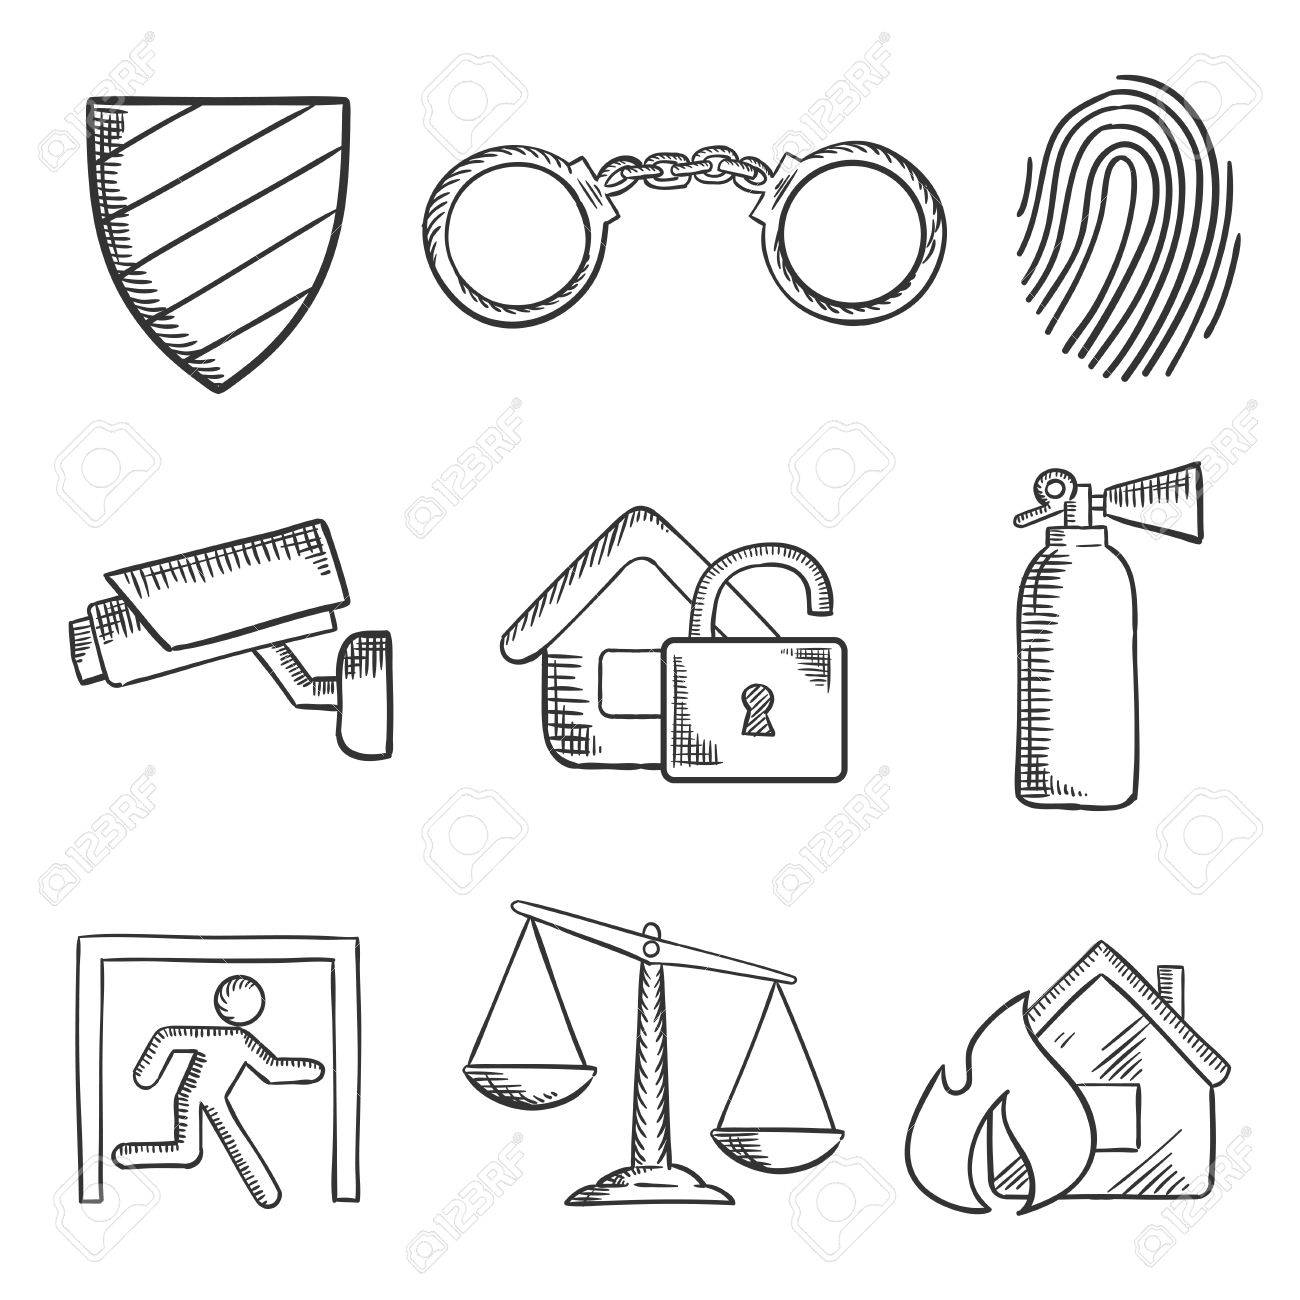 1300x1300 Safety And Security Sketch Style Icons With A Security Shield